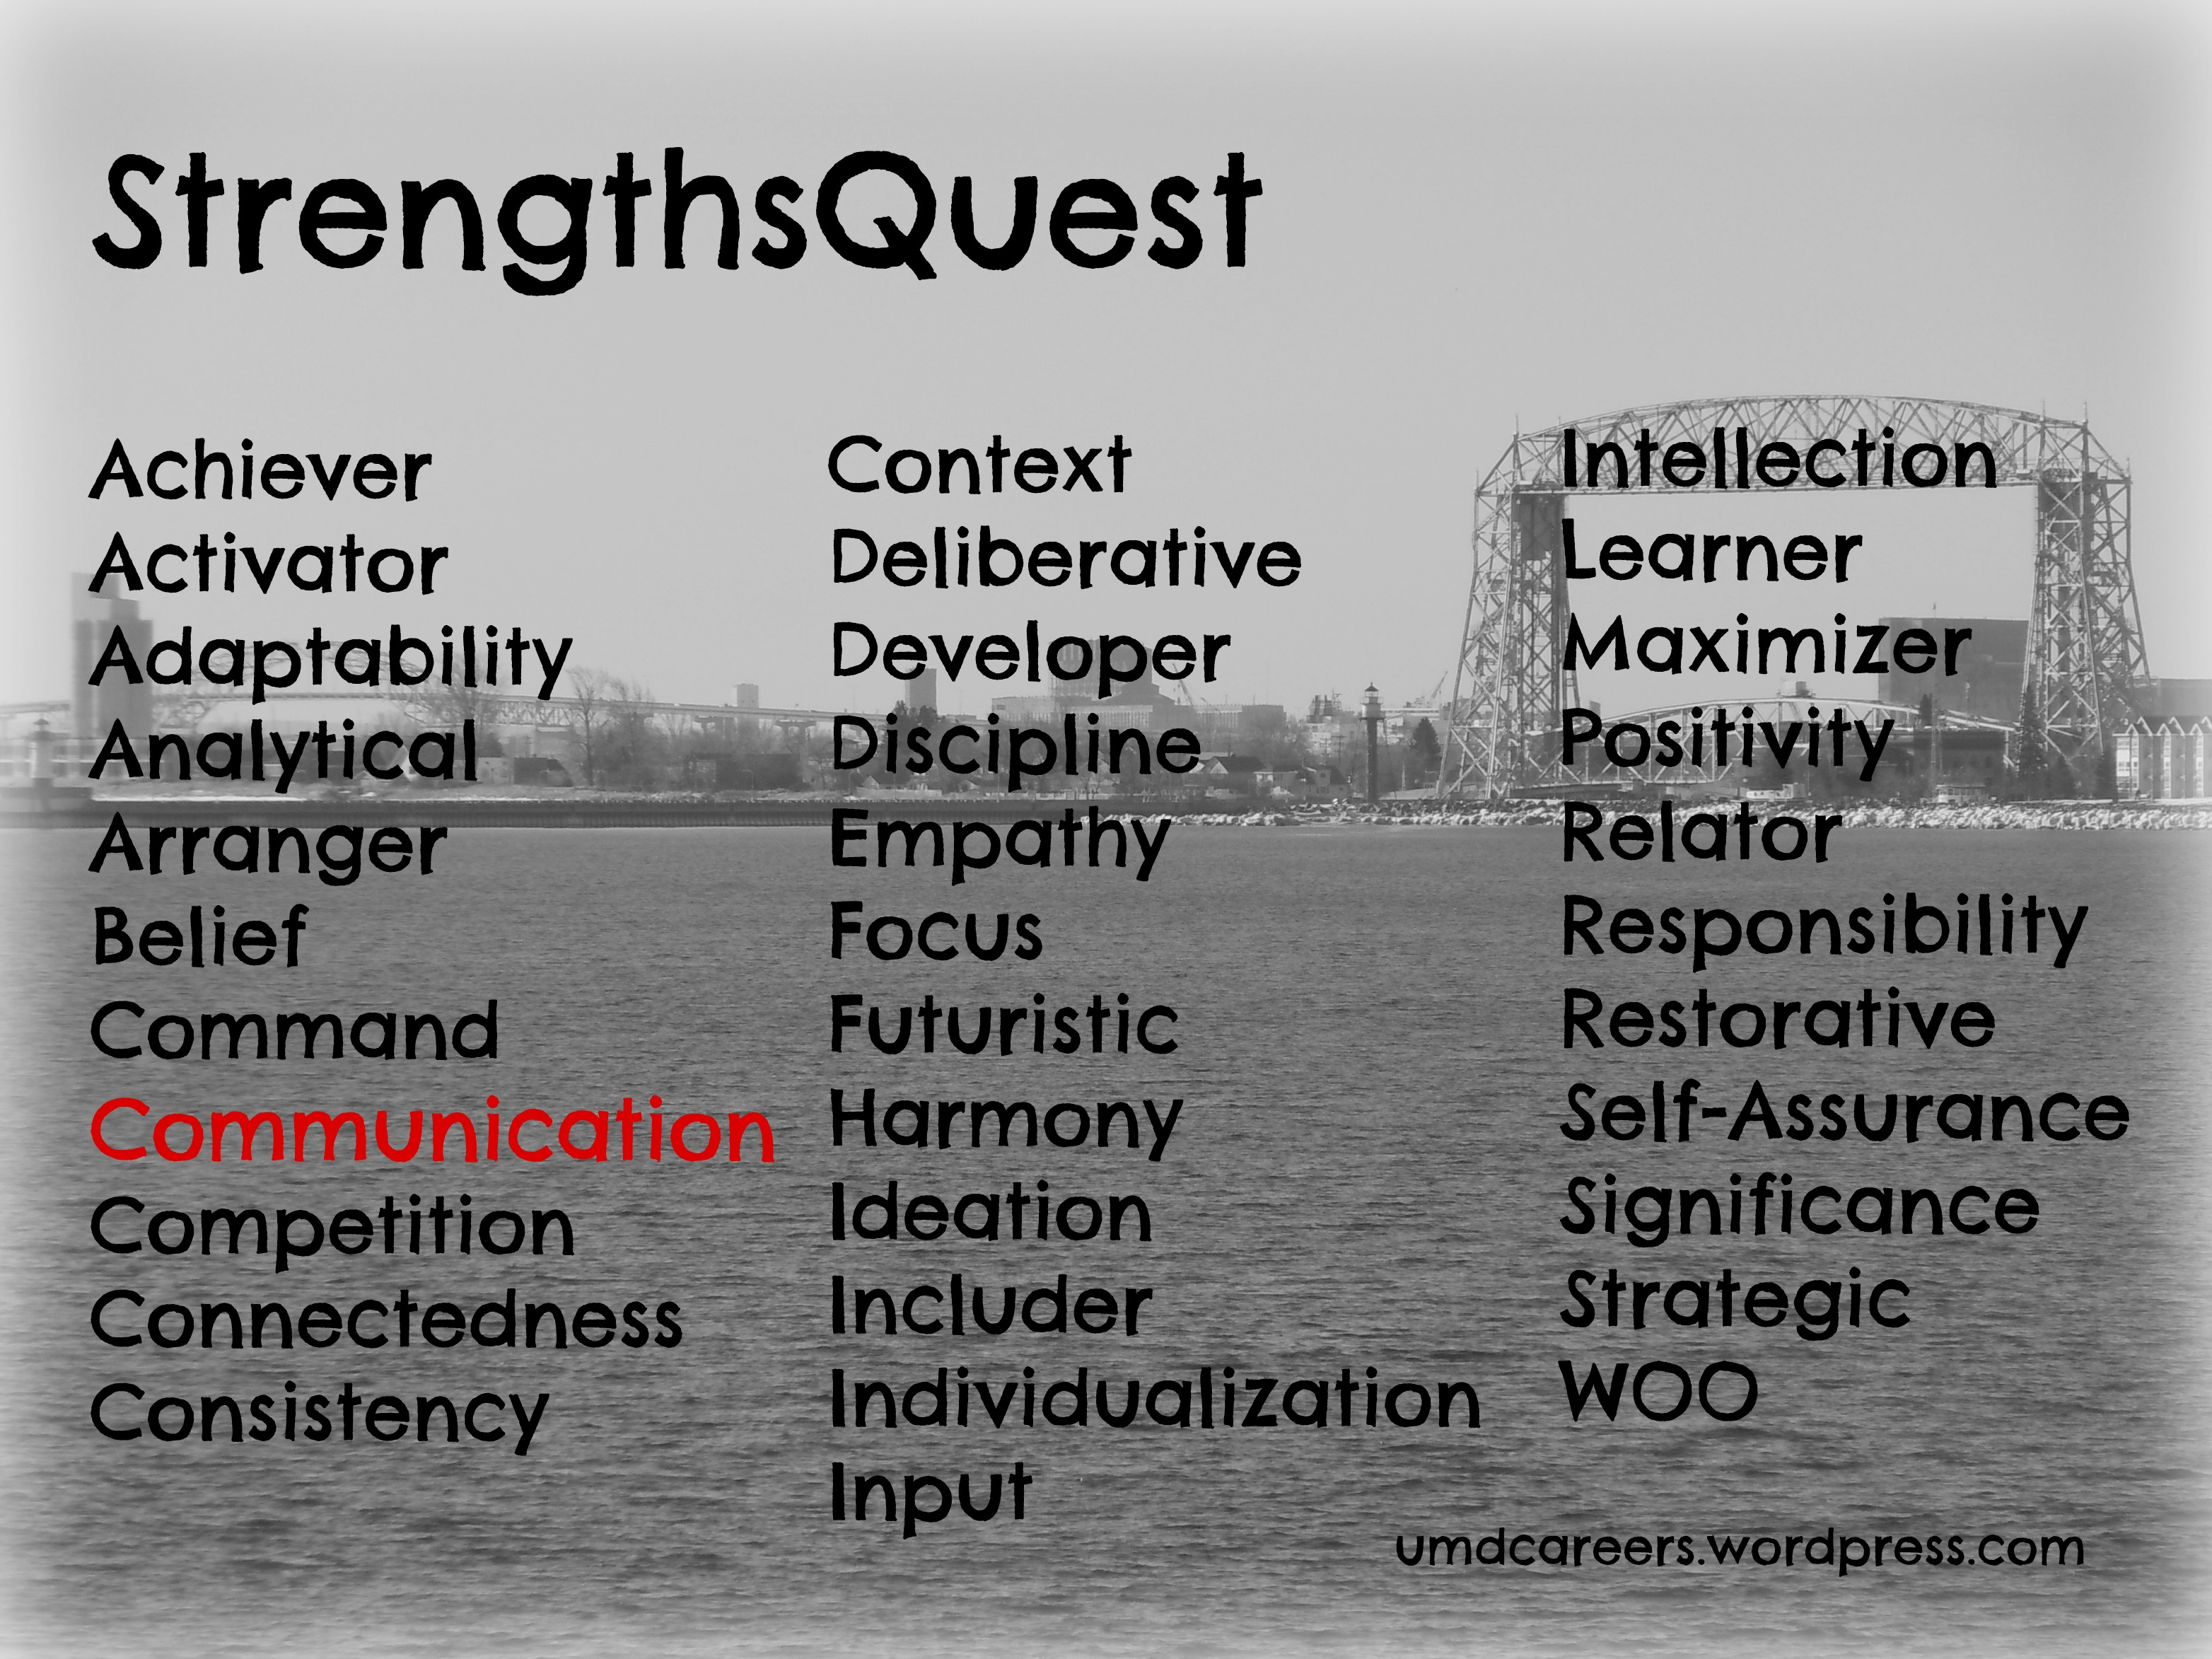 strengthsquest page peer into your career in the career internship services office i took the strengthsquest assessment for my first time and communication came up in my top 5 strengths